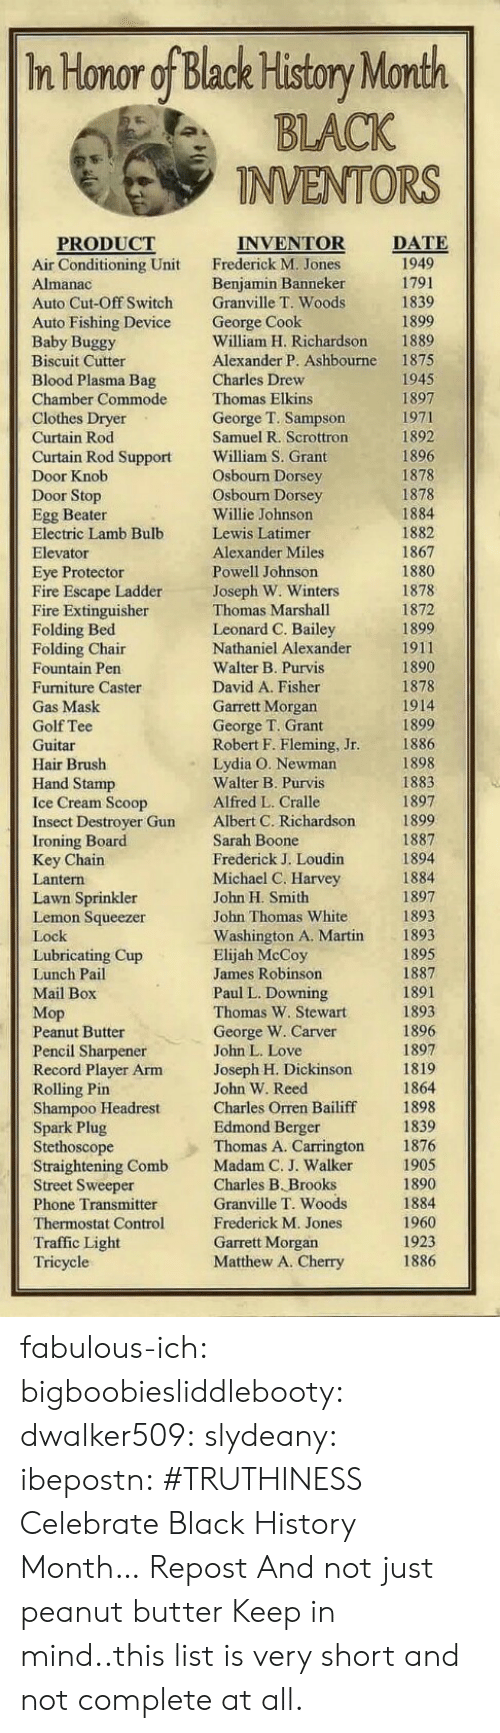 Newman: In Honor of Black History Month  BLACK  INVENTORS  DATE  PRODUCT  Air Conditioning Unit  Auto Cut-Off Switch  Auto Fishing Device  Baby Buggy  Biscuit Cutter  Blood Plasma Bag  Chamber Commode  INVENTOR  Frederick M. Jones  Benjamin Banneker  Granville T. Woods  George Cook  William H. Richardson  Alexander P. Ashbourne  1889  1875  1945  ew  Thomas Elkins  George T. Sampson  Samuel R. Scrottron  William S. Grant  Osbourn Dorsey  Osbourn Dorsey  Willie Johnson  Lewis Latimer  Alexander Miles  Powell Johnson  Joseph W. Winters  Thomas Marshall  Leonard C. Bailey  Nathaniel Alexander  Walter B. Purvis  David A. Fisher  Garrett Morgan  George T. Grant  Robert F. Fleming, Jr  Lydia O. Newman  Walter B. Purvis  Alfred L. Cralle  Albert C. Richardson  Sarah Boone  Frederick J. Loudin  Michael C. Harvey  John H. Smith  John Thomas White  Washington A. Martin  Elijah McCoy  James Robinson  Paul L. Downing  Thomas W. Stewart  George W. Carver  John L. Love  Joseph H. Dickinsorn  John W. Reed  Charles Orren Bailiff  Edmond Berger  Thomas A. Carrington  Curtain Rod Support  1878  Egg Beater  Electric Lamb Bulb  Eye Protector  Fire Escape Ladder  Fire Extinguisher  Folding Bed  1867  1878  1899  ir  Fountain Pen  Furniture Caster  1878  1899  1898  1897  Hand Stamp  Insect Destroyer Gun  Key Chain  Lawn Sprinkler  1897  Lemon Squeezer  1893  Lubricating Cup  Мор  Peanut Butter  Pencil Sharpener  Record Player Arm  Shampoo Headrest  Spark Plug  Stethoscope  Straightening Comb  Street Sweeper  Phone Transmitter  Thermostat Control  Traffic Light  1898  1876  1905  Madam C. J. Walke  Charles B. Brooks  Granville T. Woods  Frederick M. Jones  Garrett Morgan  Matthew A. Cherry  1960  1923  1886  ric fabulous-ich:  bigboobiesliddlebooty:  dwalker509:  slydeany:  ibepostn:  #TRUTHINESS  Celebrate Black History Month…  Repost  And not just peanut butter  Keep in mind..this list is very short and not complete at all.